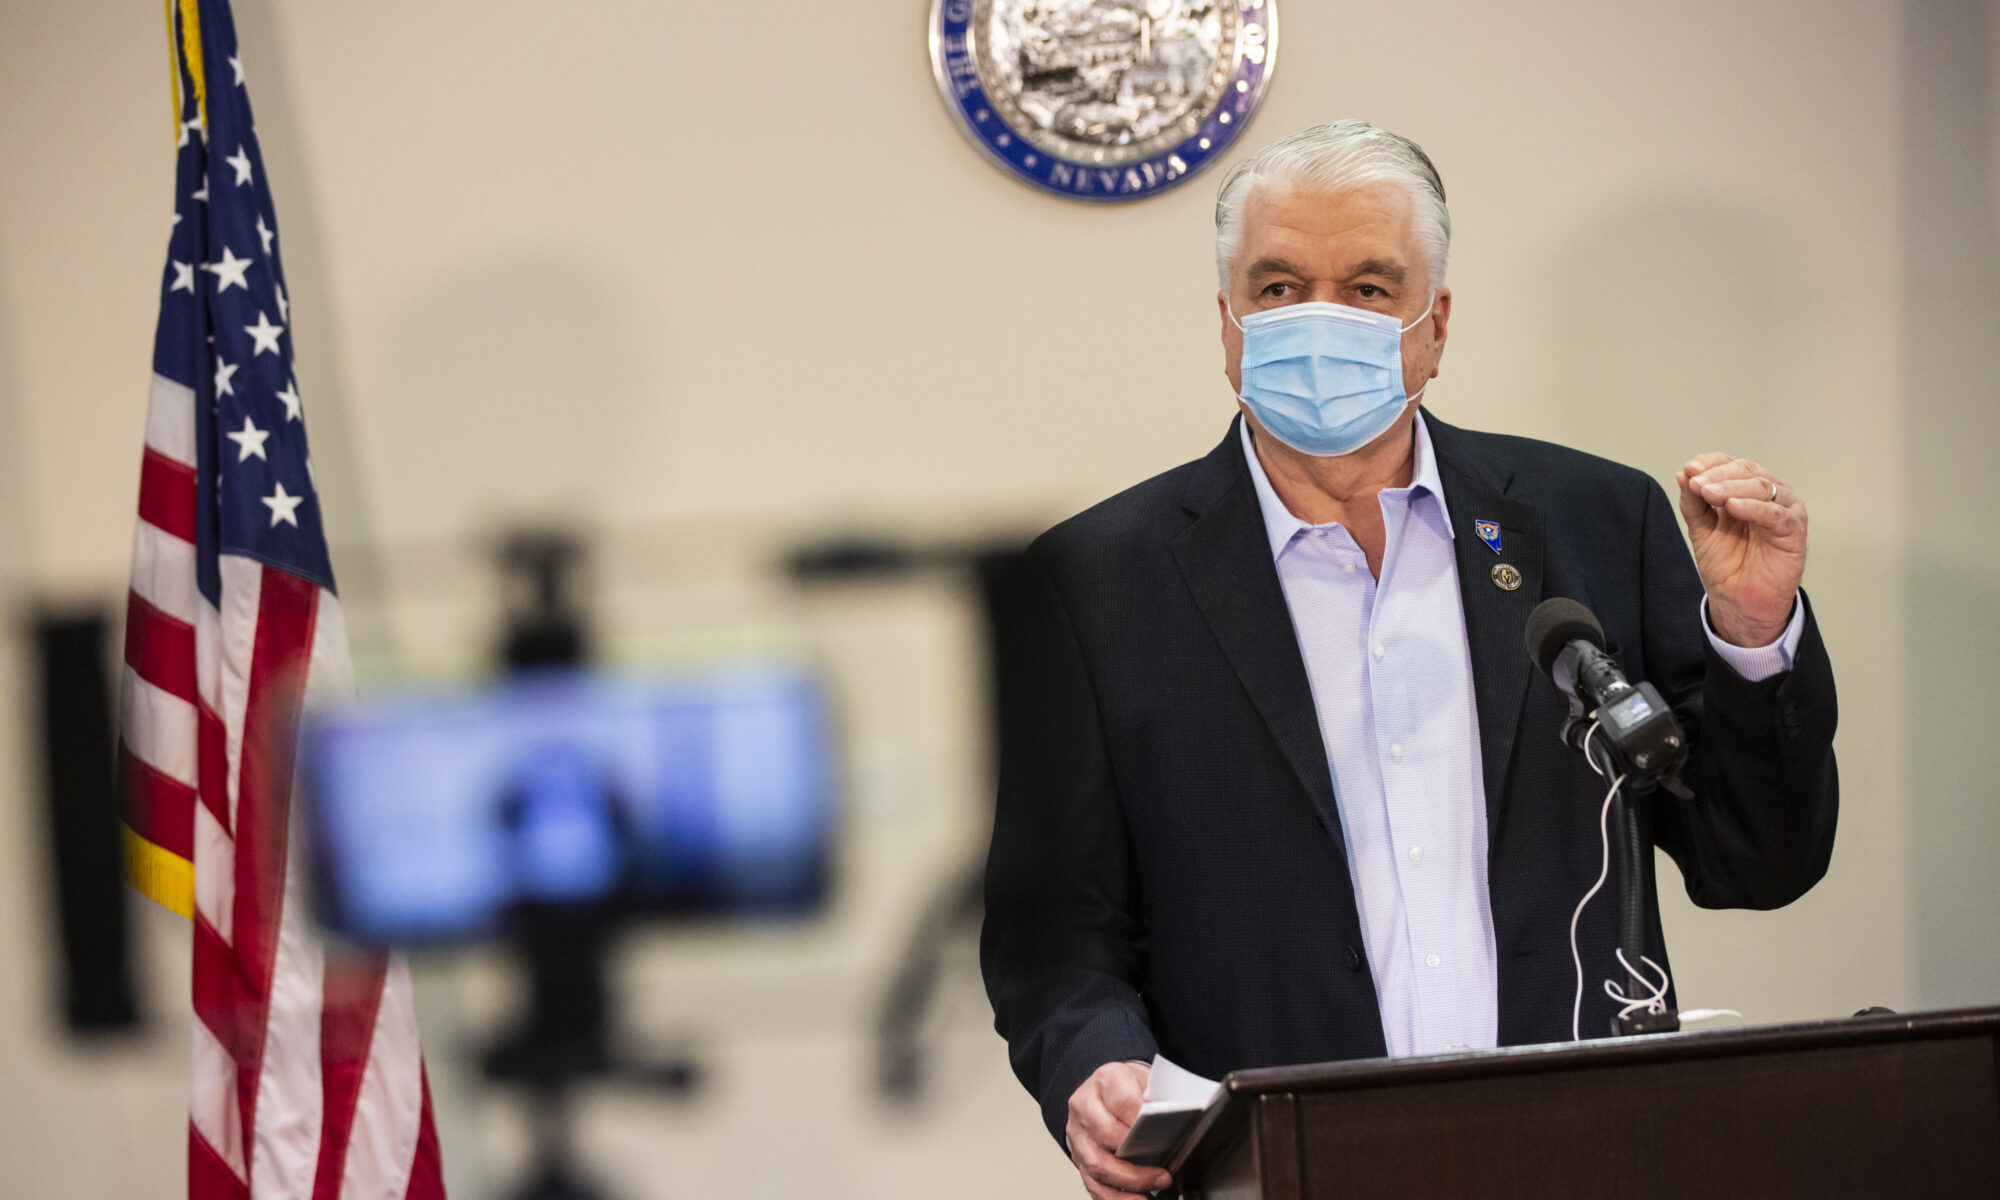 Governor Steve Sisolak with mask on